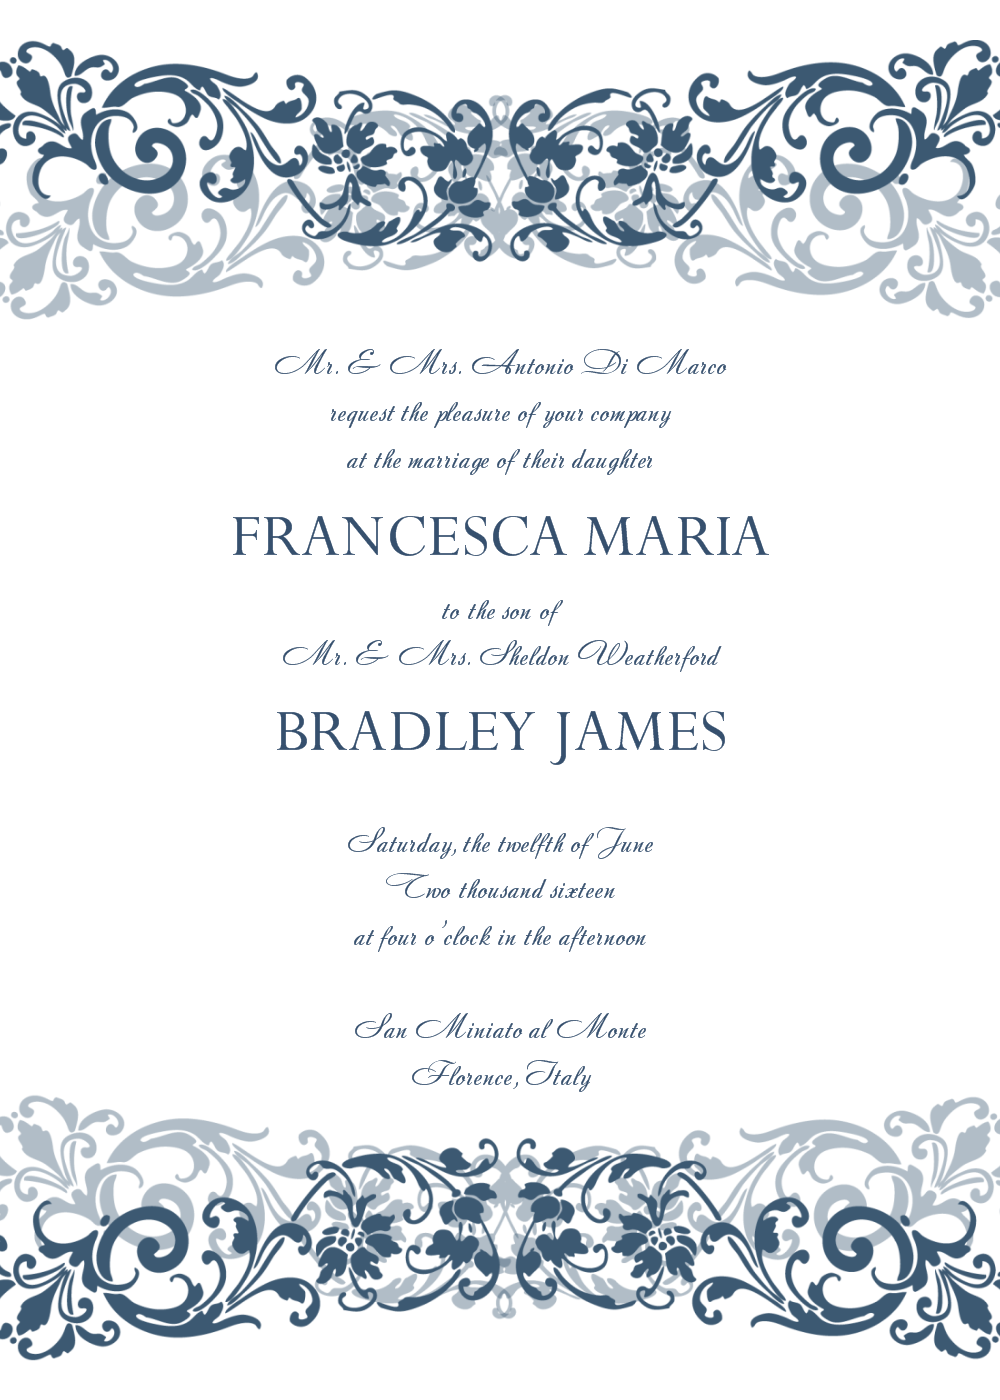 30 Free Wedding Invitations Templates – Invitation Templates for Word